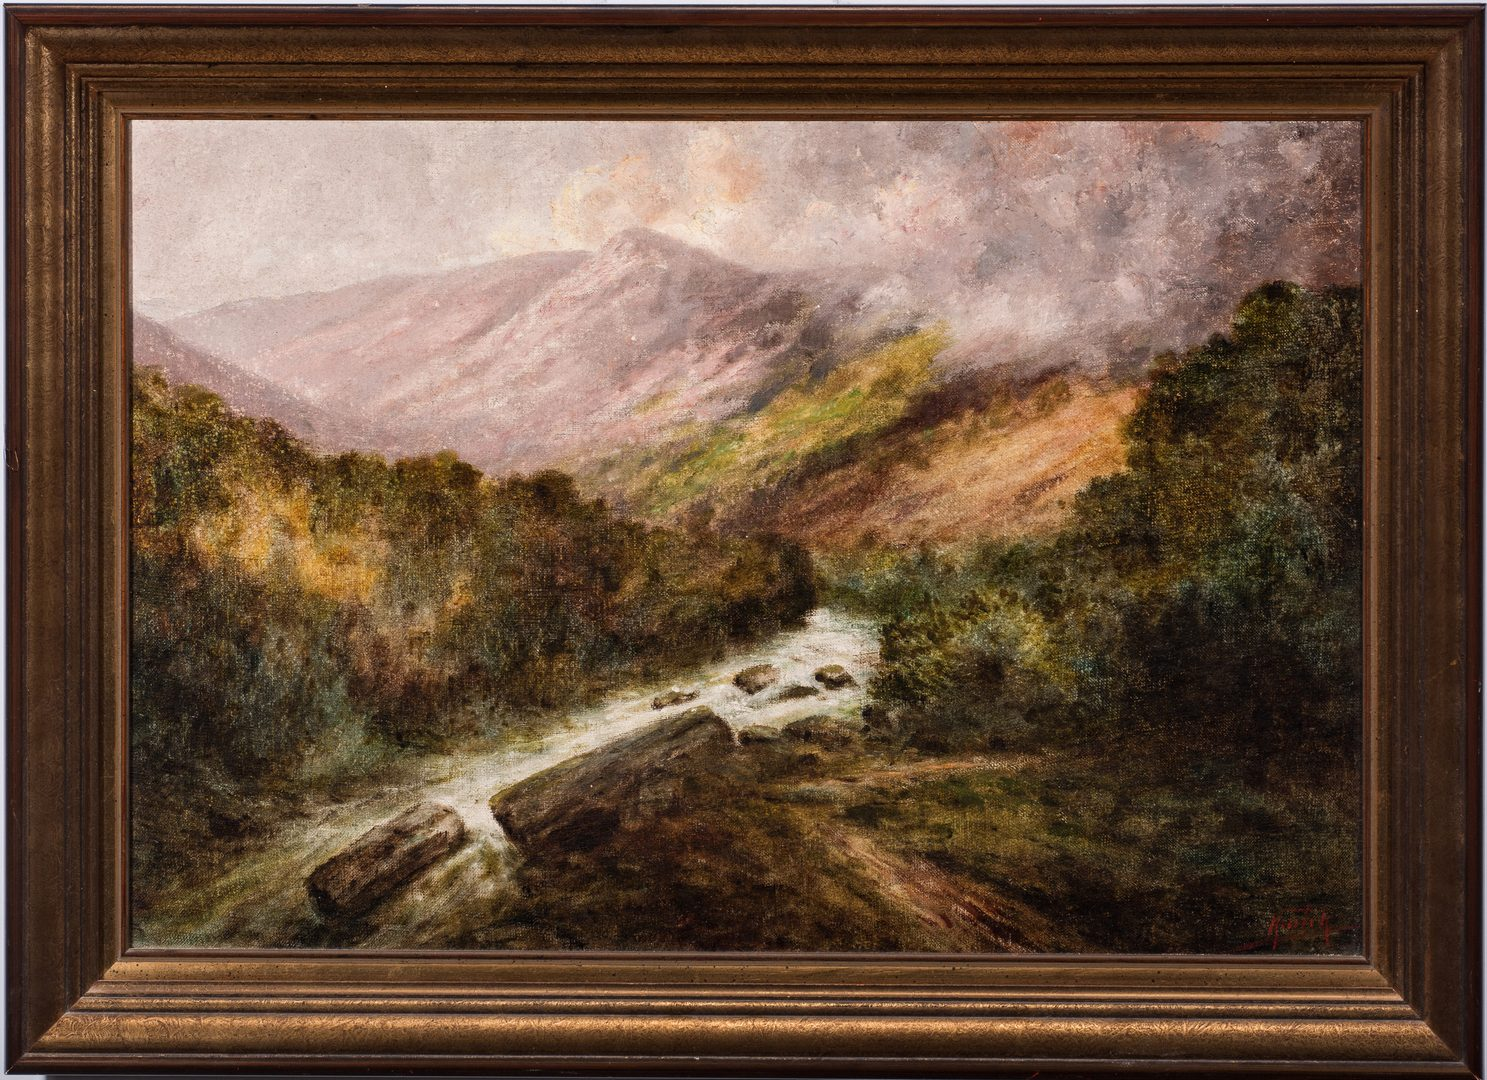 Lot 98: Charles Krutch, O/B, Mountain Landscape